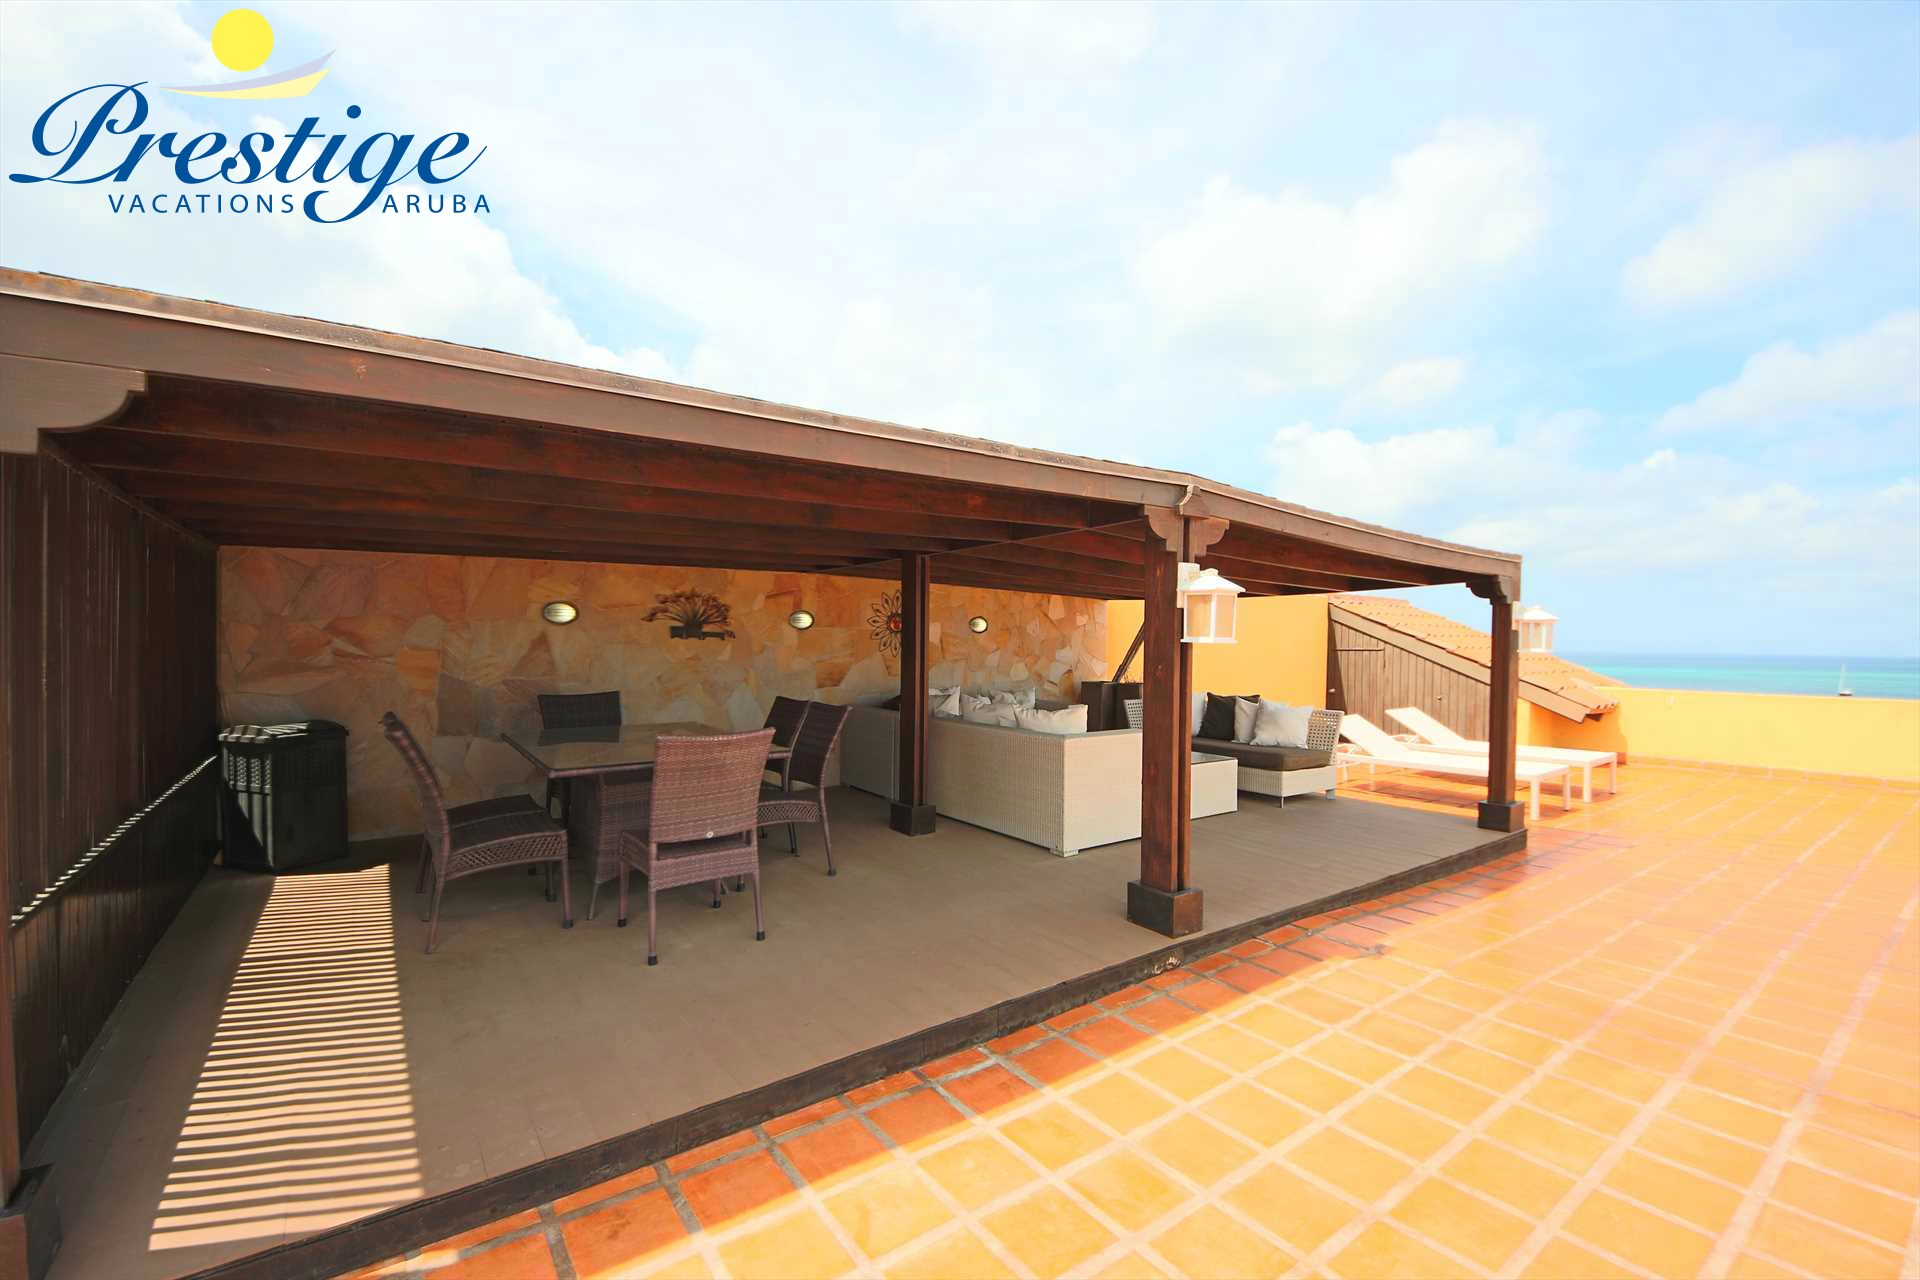 Large gazebo on the rooftop with dining and seating area